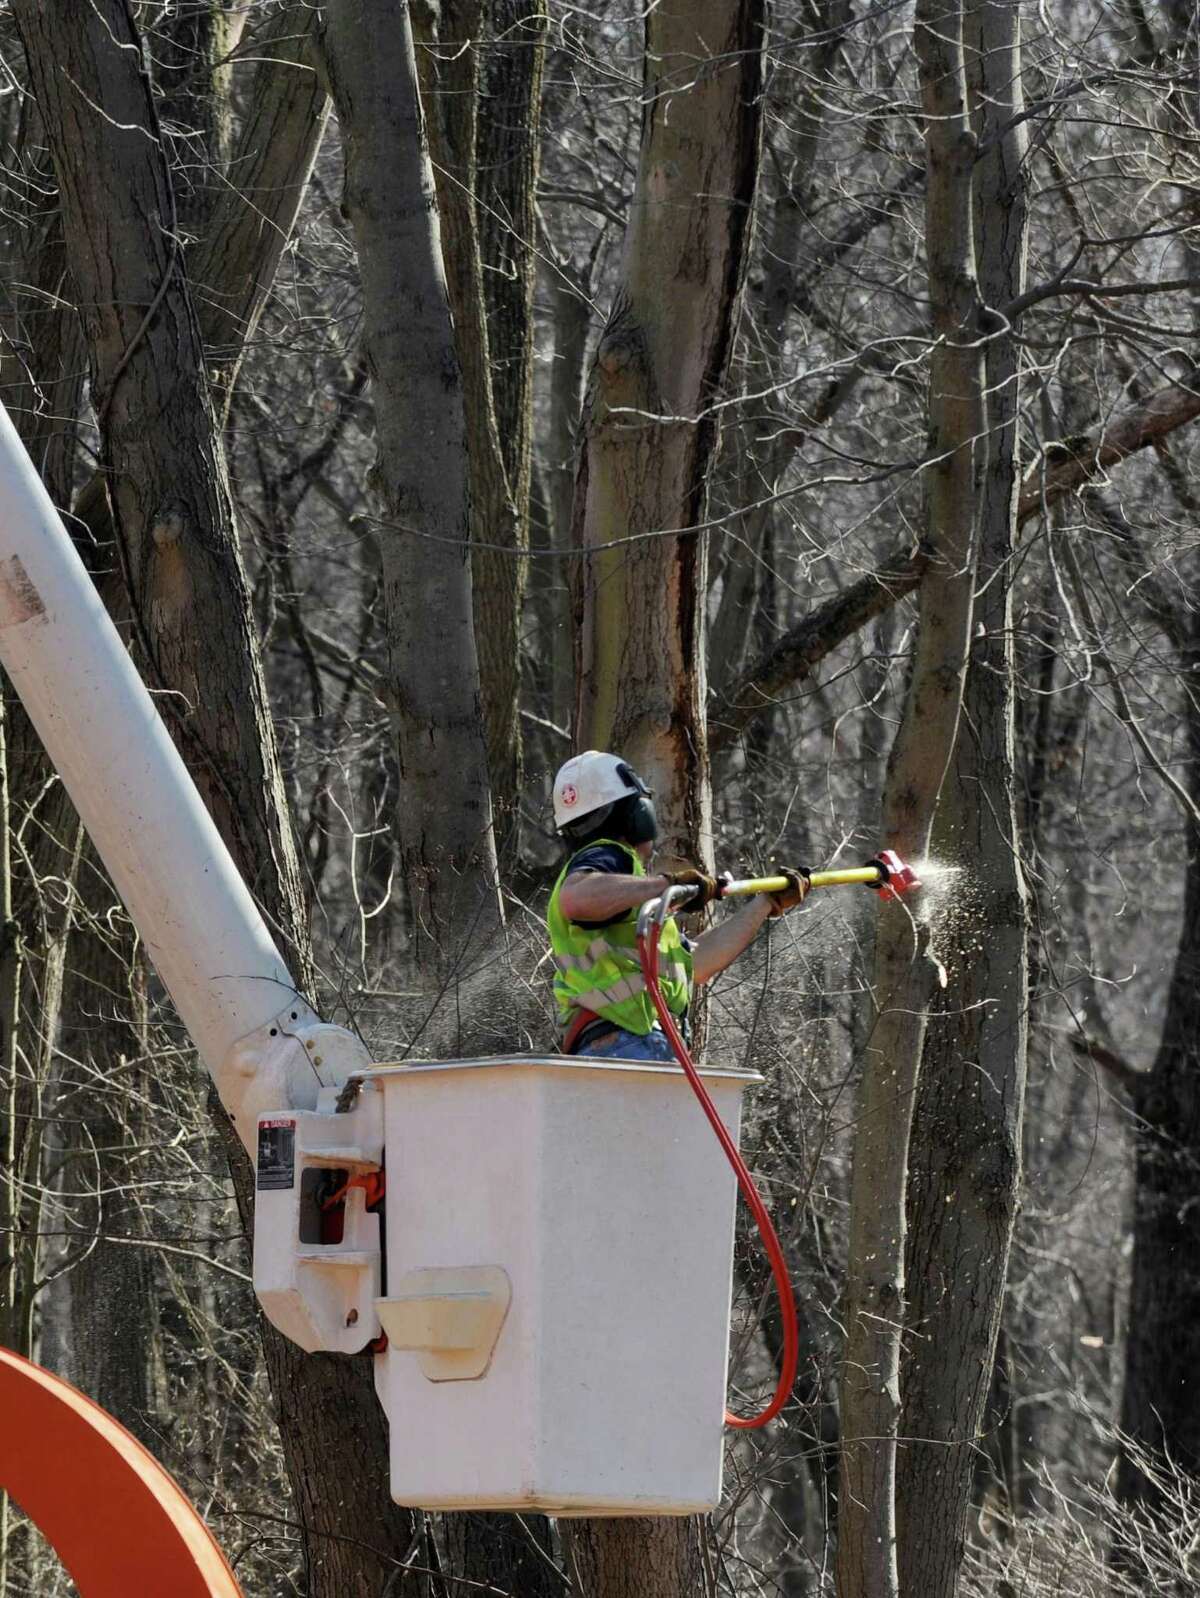 Conn. State Department of Transportation workers trim trees along the Merritt Parkway N just north of the Merwin's lane overpass in Fairfield, Conn. on Monday, march 12, 2012.